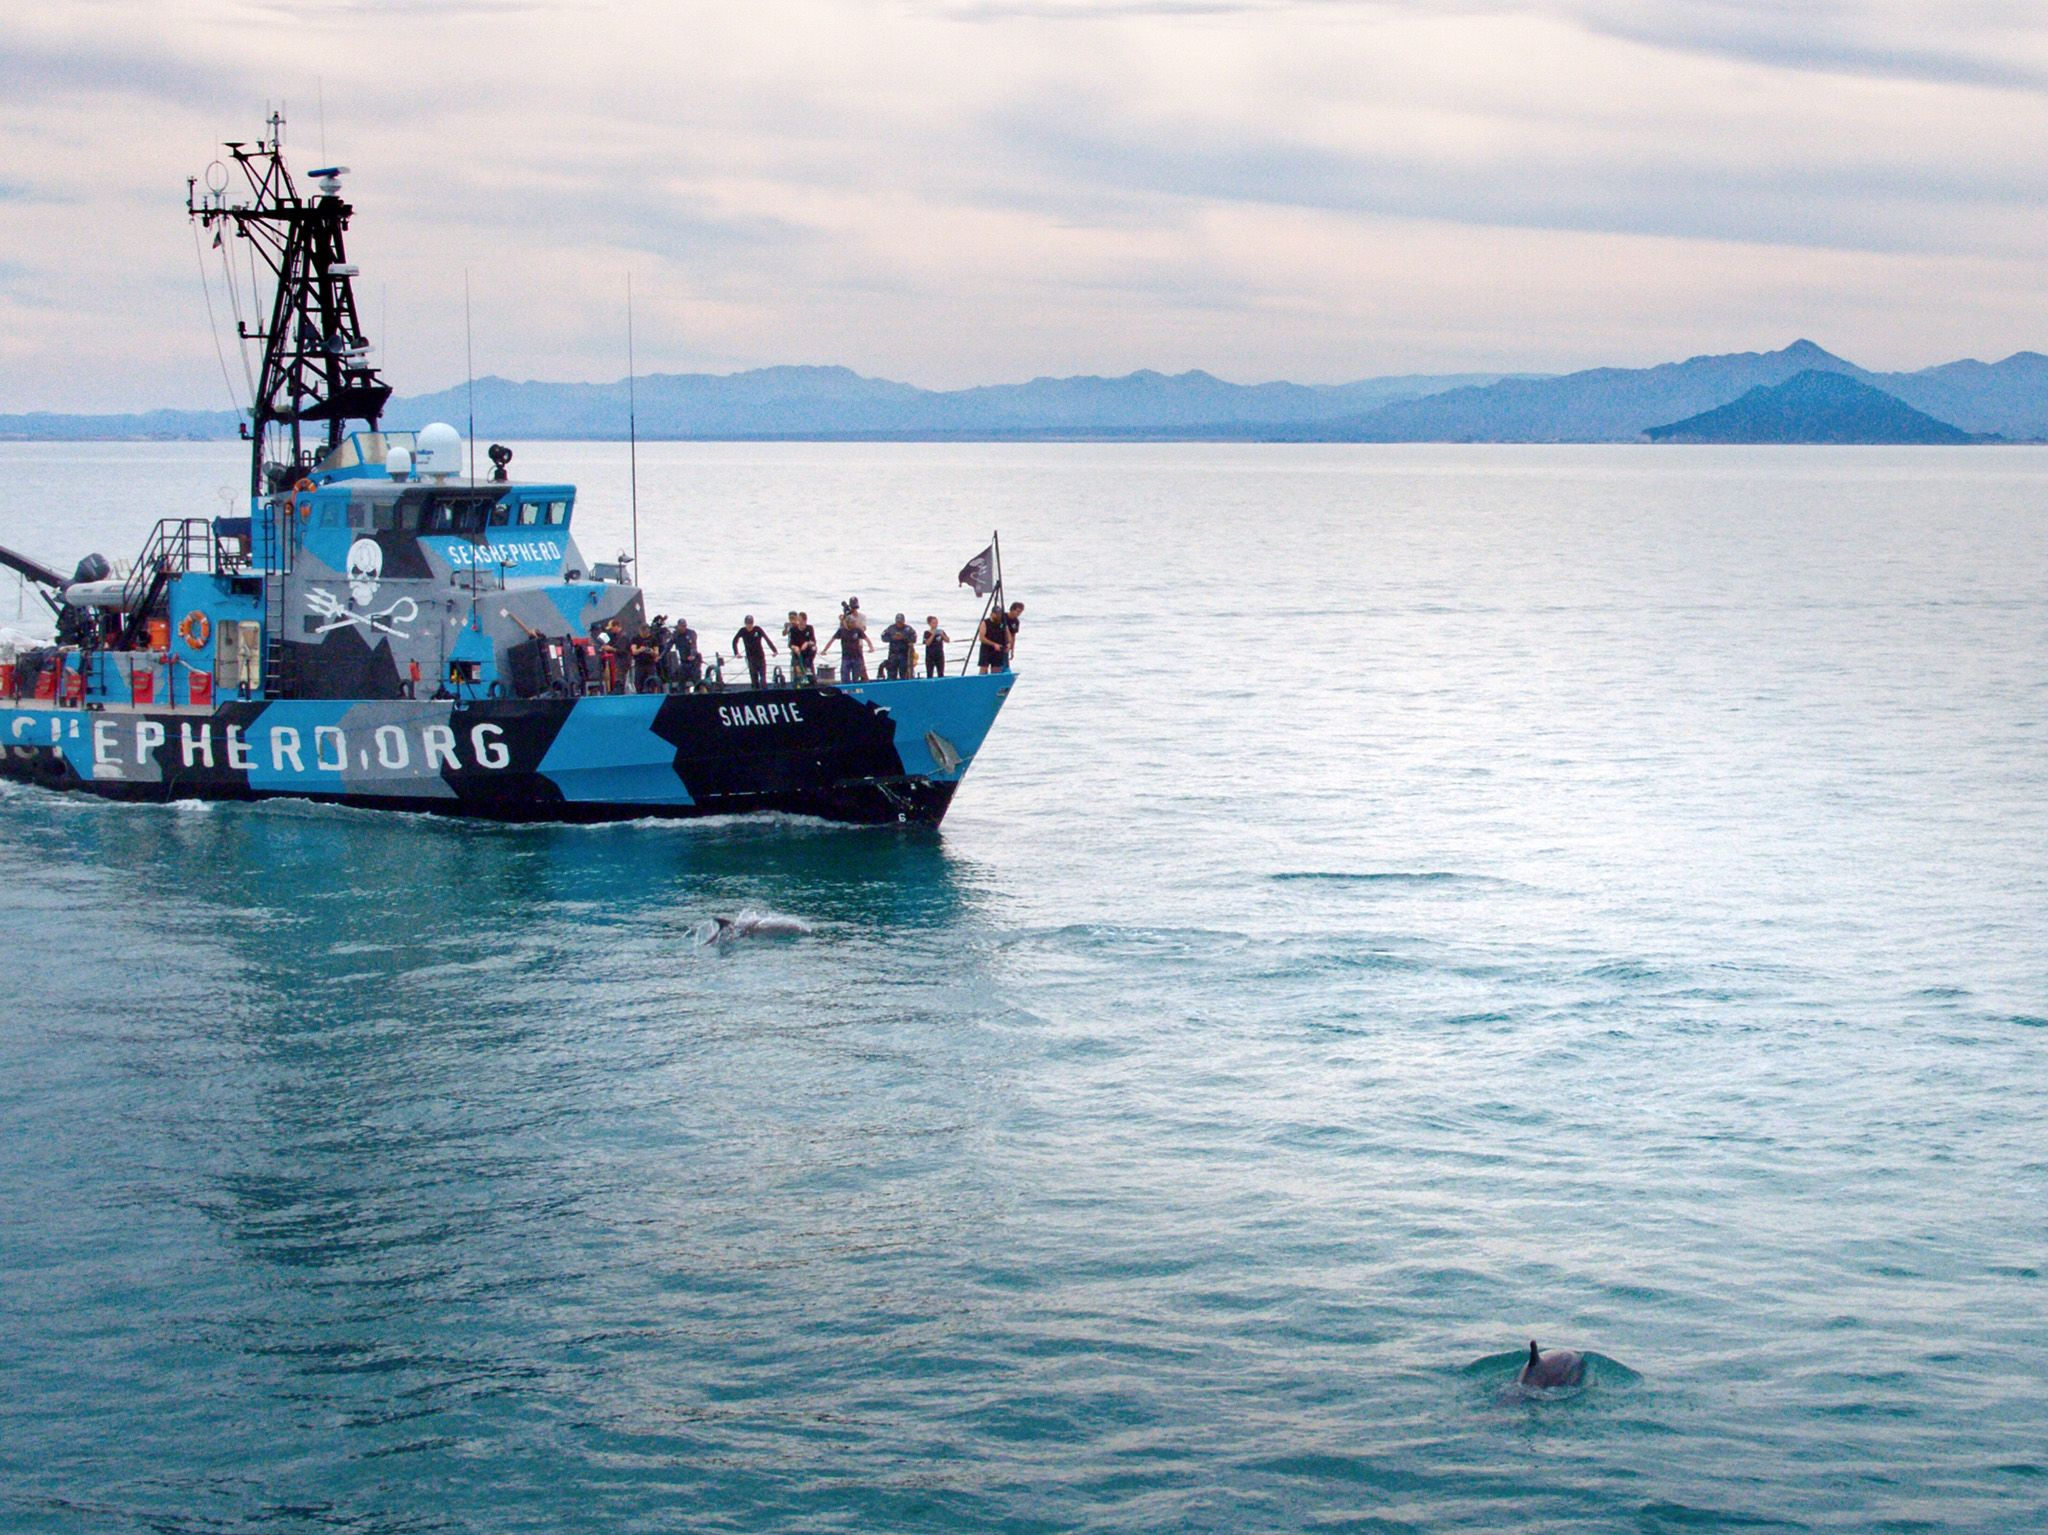 Sea Shepherd Vessel in the coastal waters of San Felipe.  This image is from Sea of Shadows. [Photo of the day - نوامبر 2019]